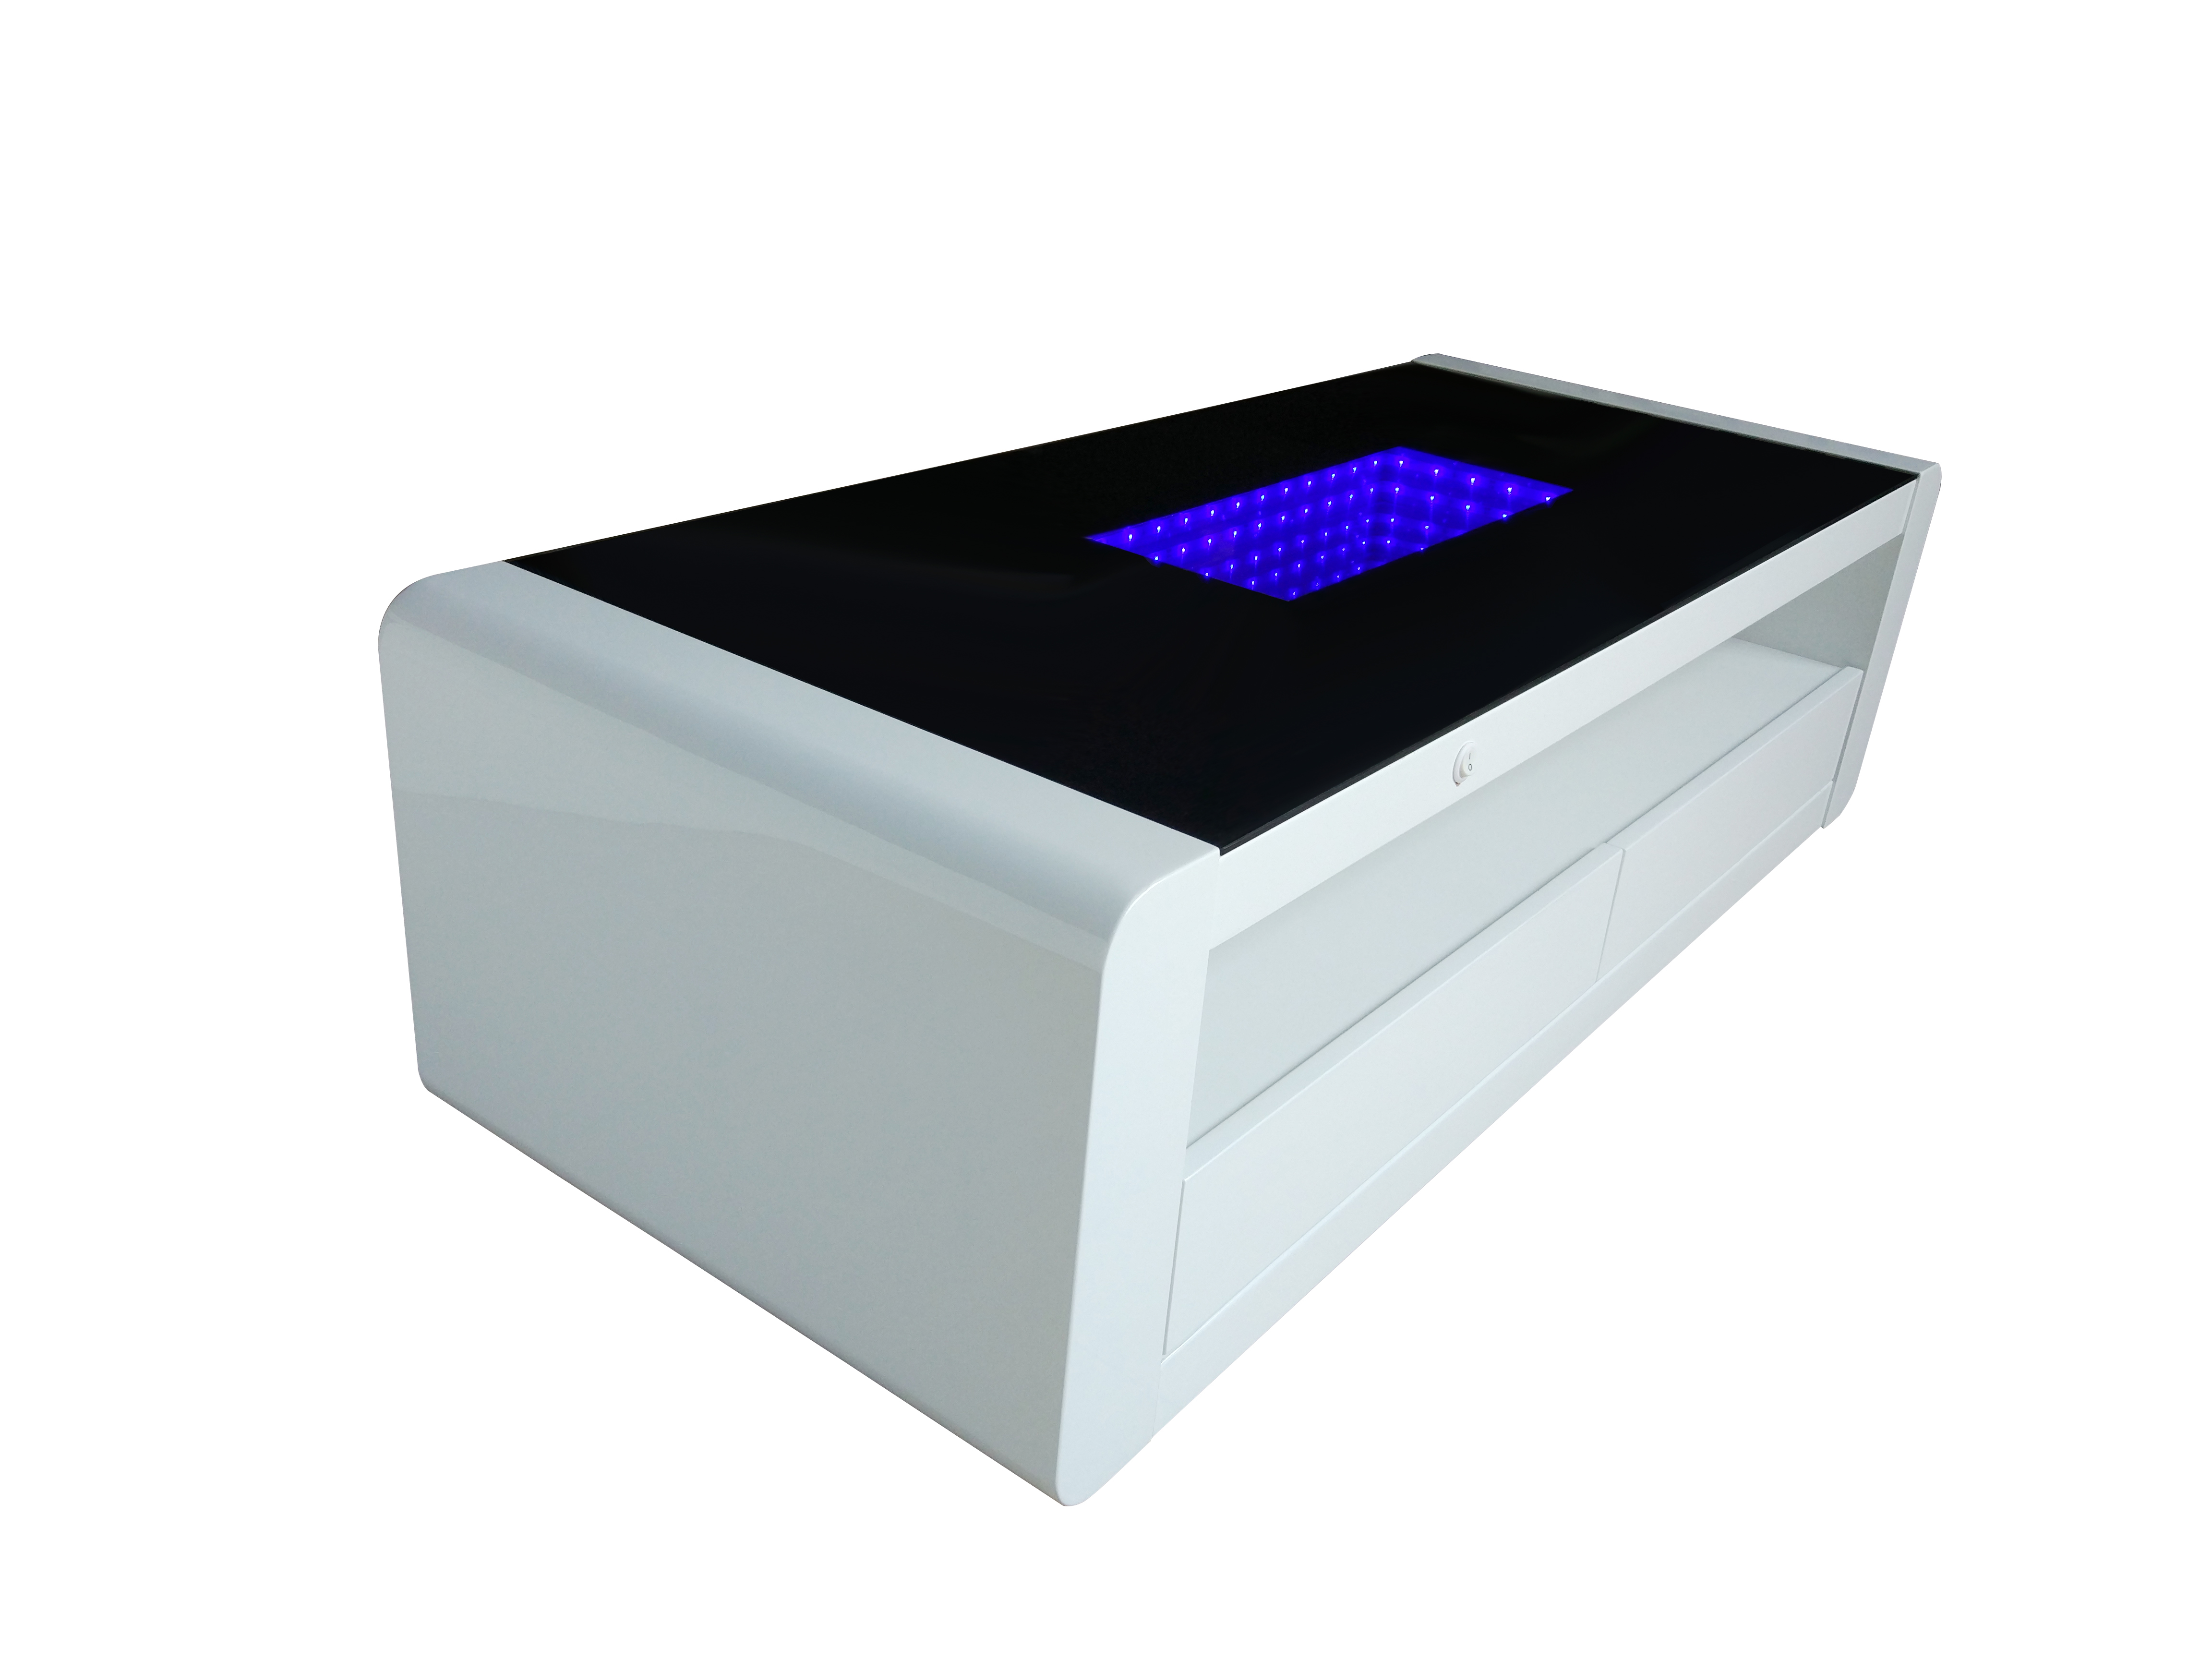 Matrix high gloss coffee table white black gloss with blue led matrix high gloss coffee table white black gloss with blue led lighting geotapseo Gallery